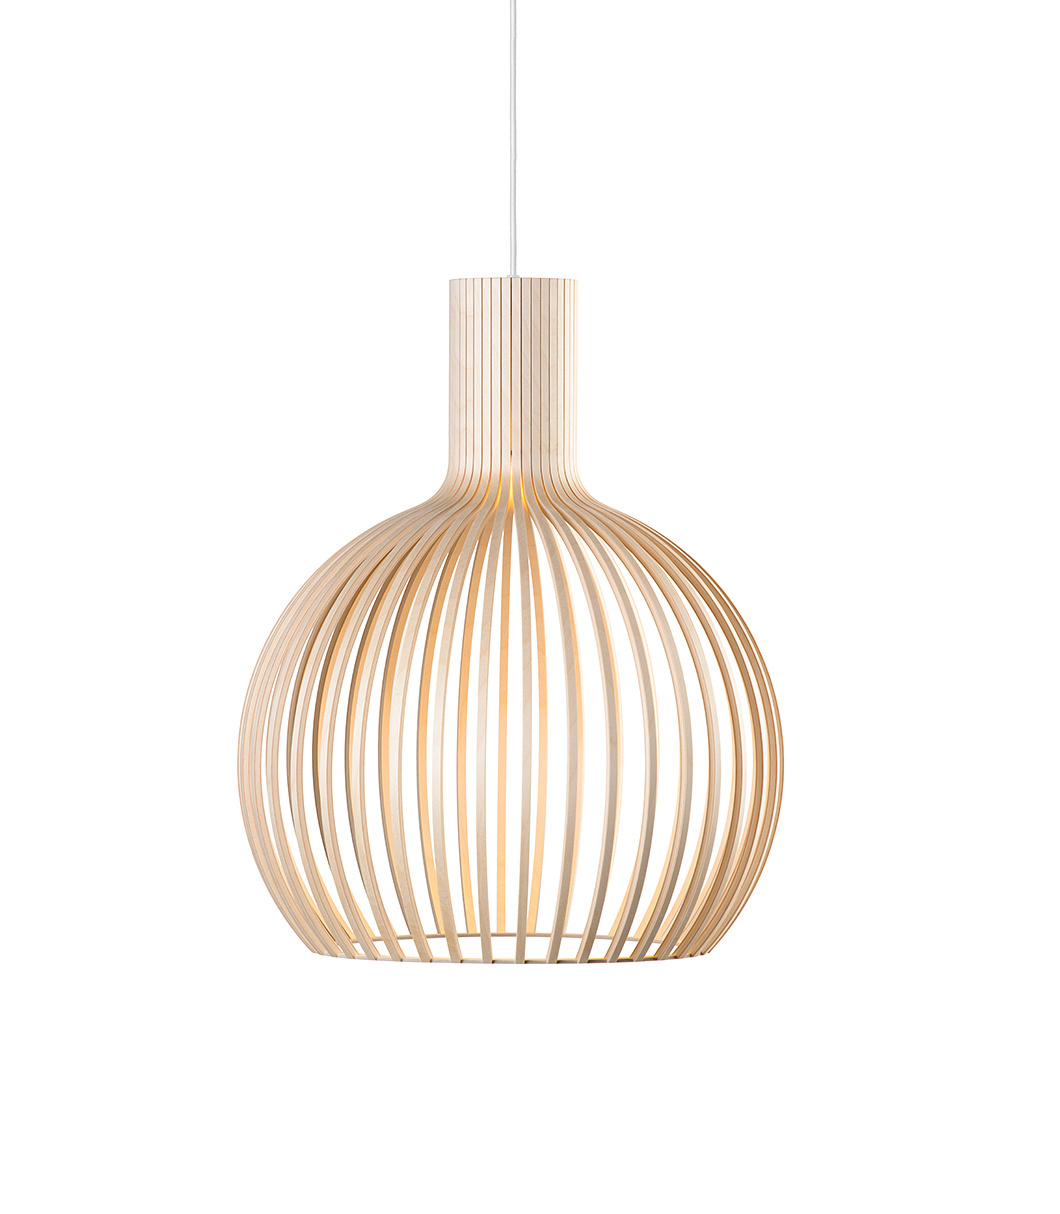 Octo Small 4241 Wooden Modern Pendant Lamp Secto Design